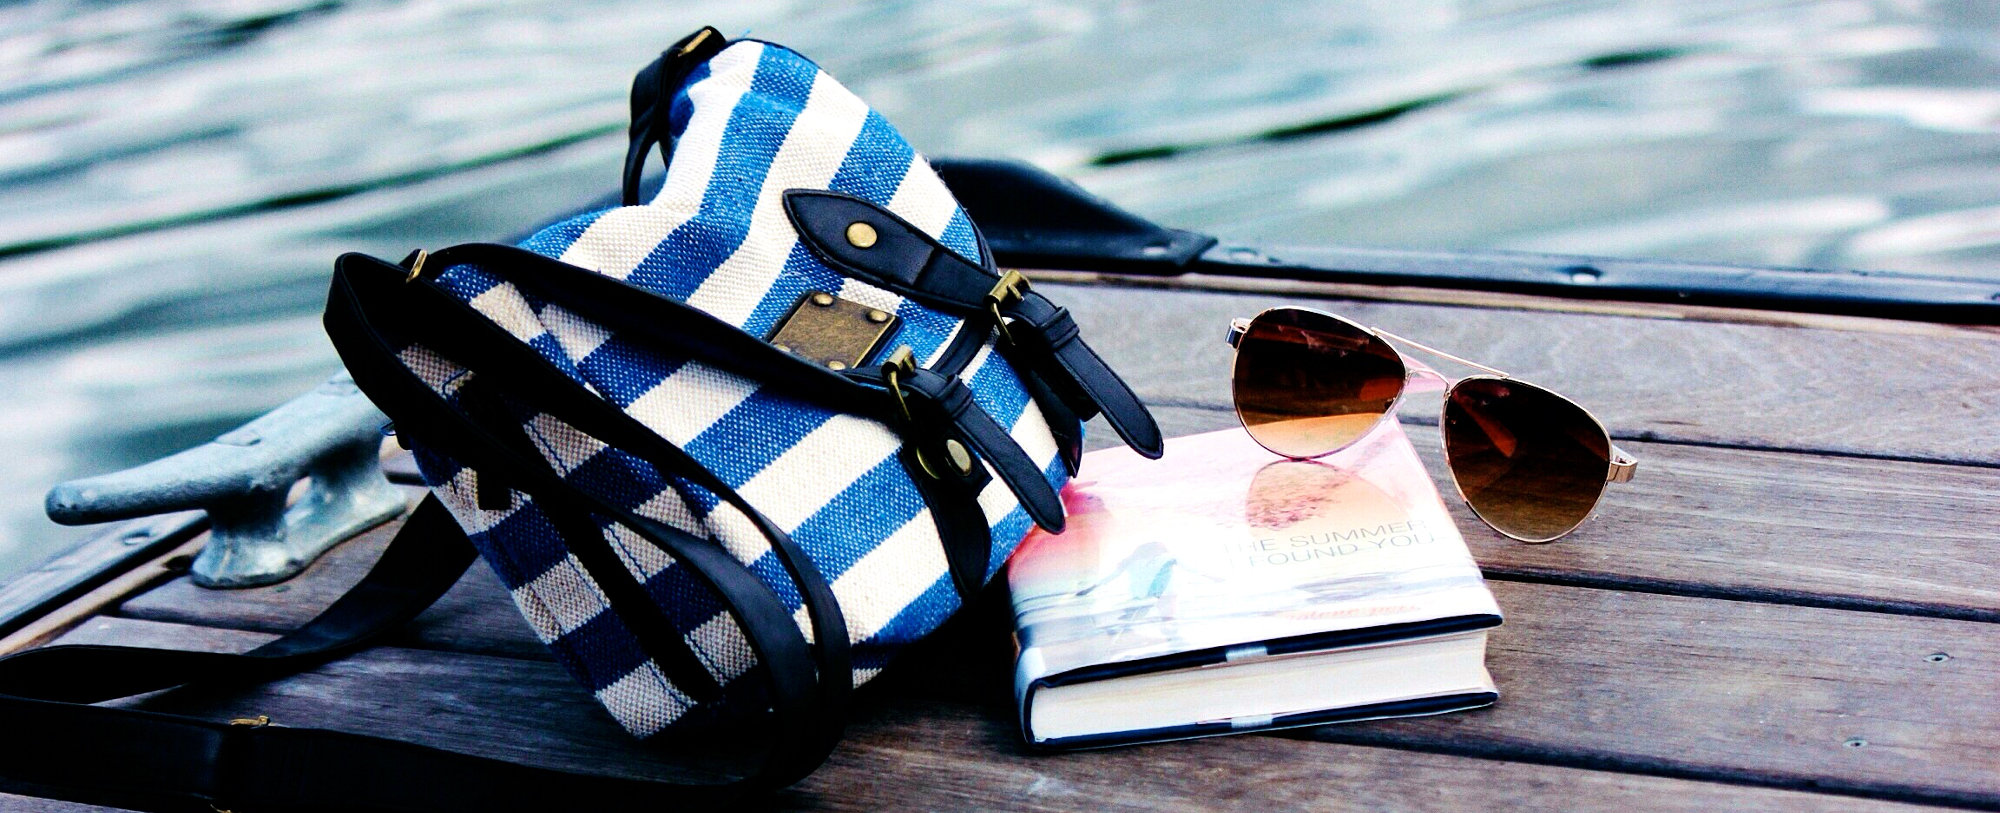 7 Books that will Inspire you to Travel